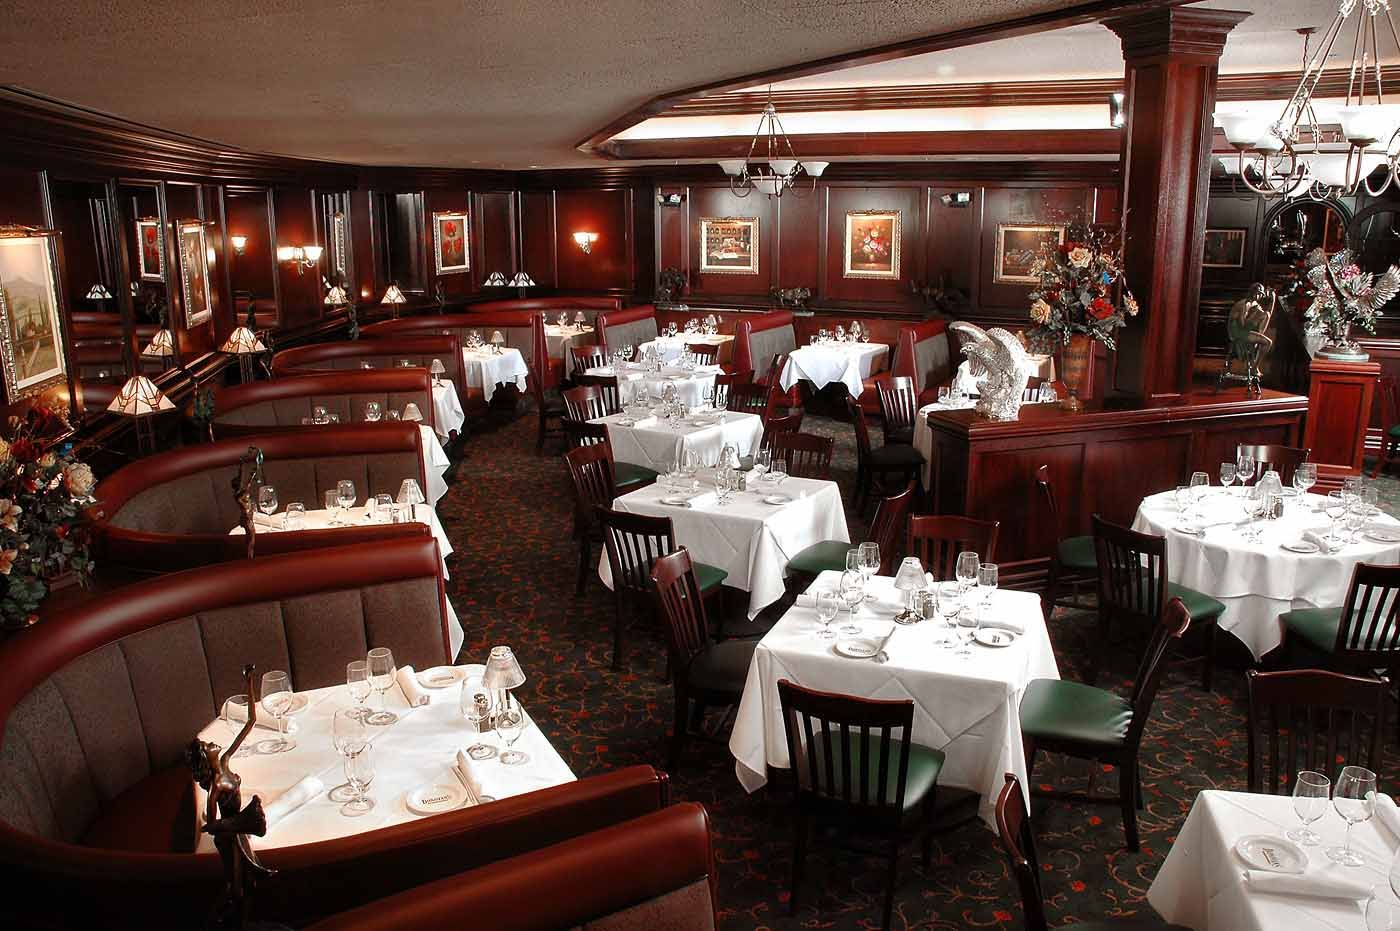 Fancy restaurants interior - Now Home Furniture All Will Post About Restaurant Interior Design Restaurant Interior Design Is Kind Of Design Which Makes The Interior Of